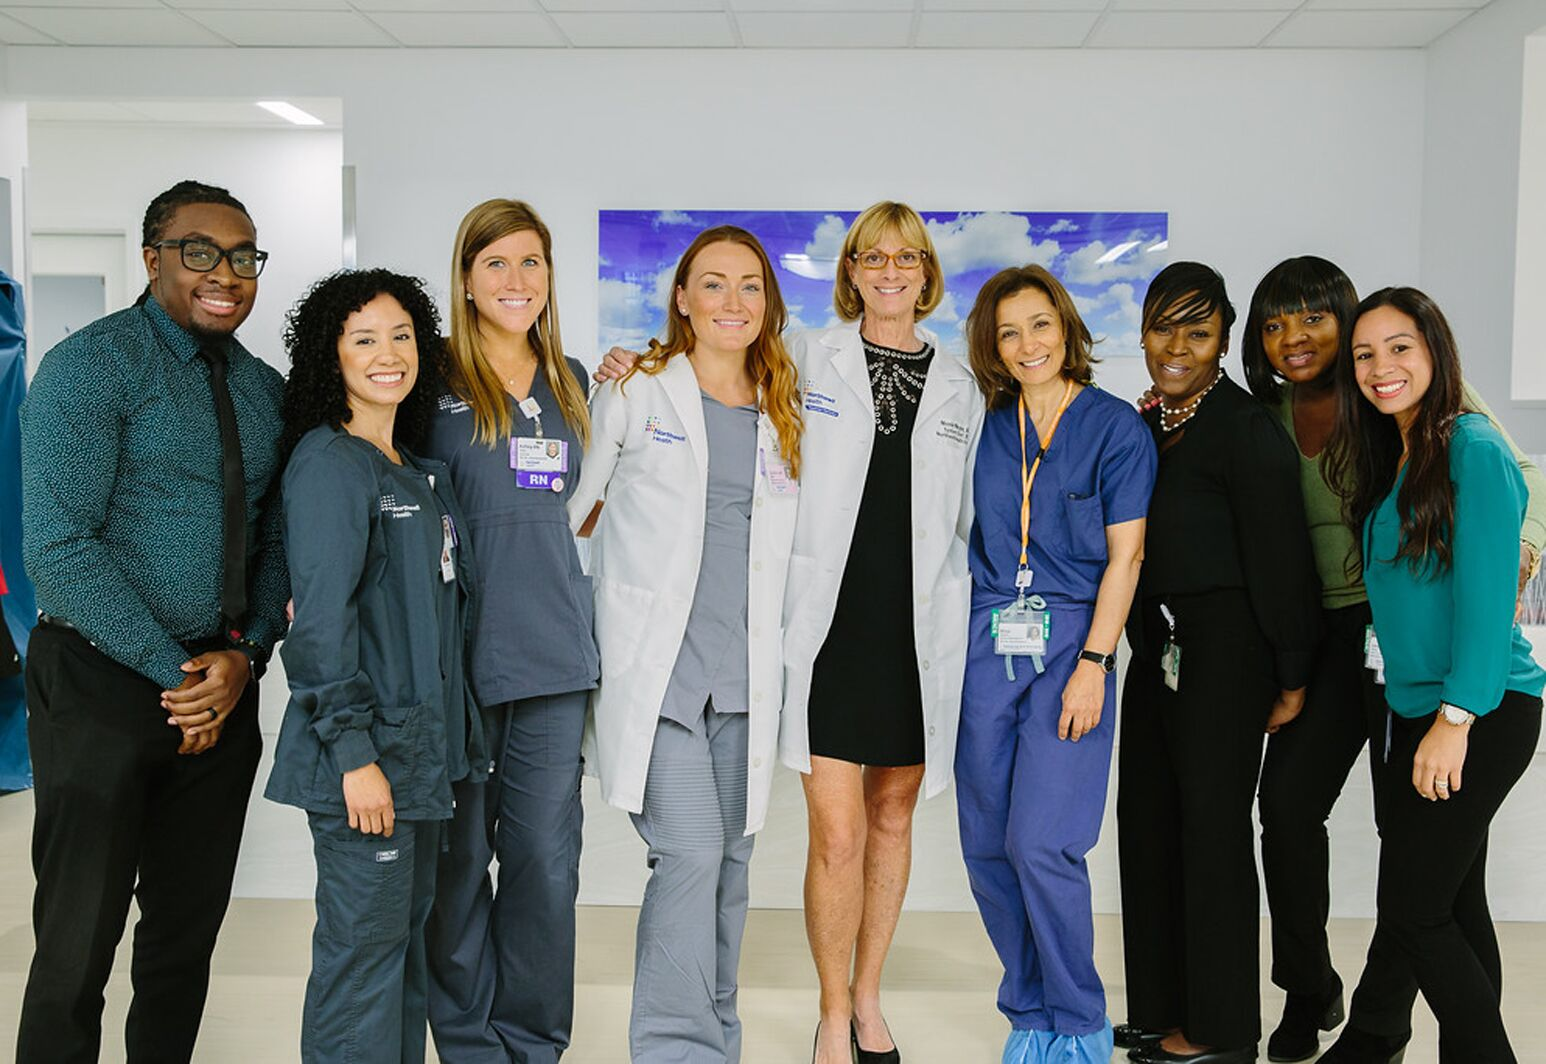 Nicole Noyes, MD, (center) with her staff at Northwell's new $25 million Reproductive and Endocrinology and Infertility Center in Manhattan.